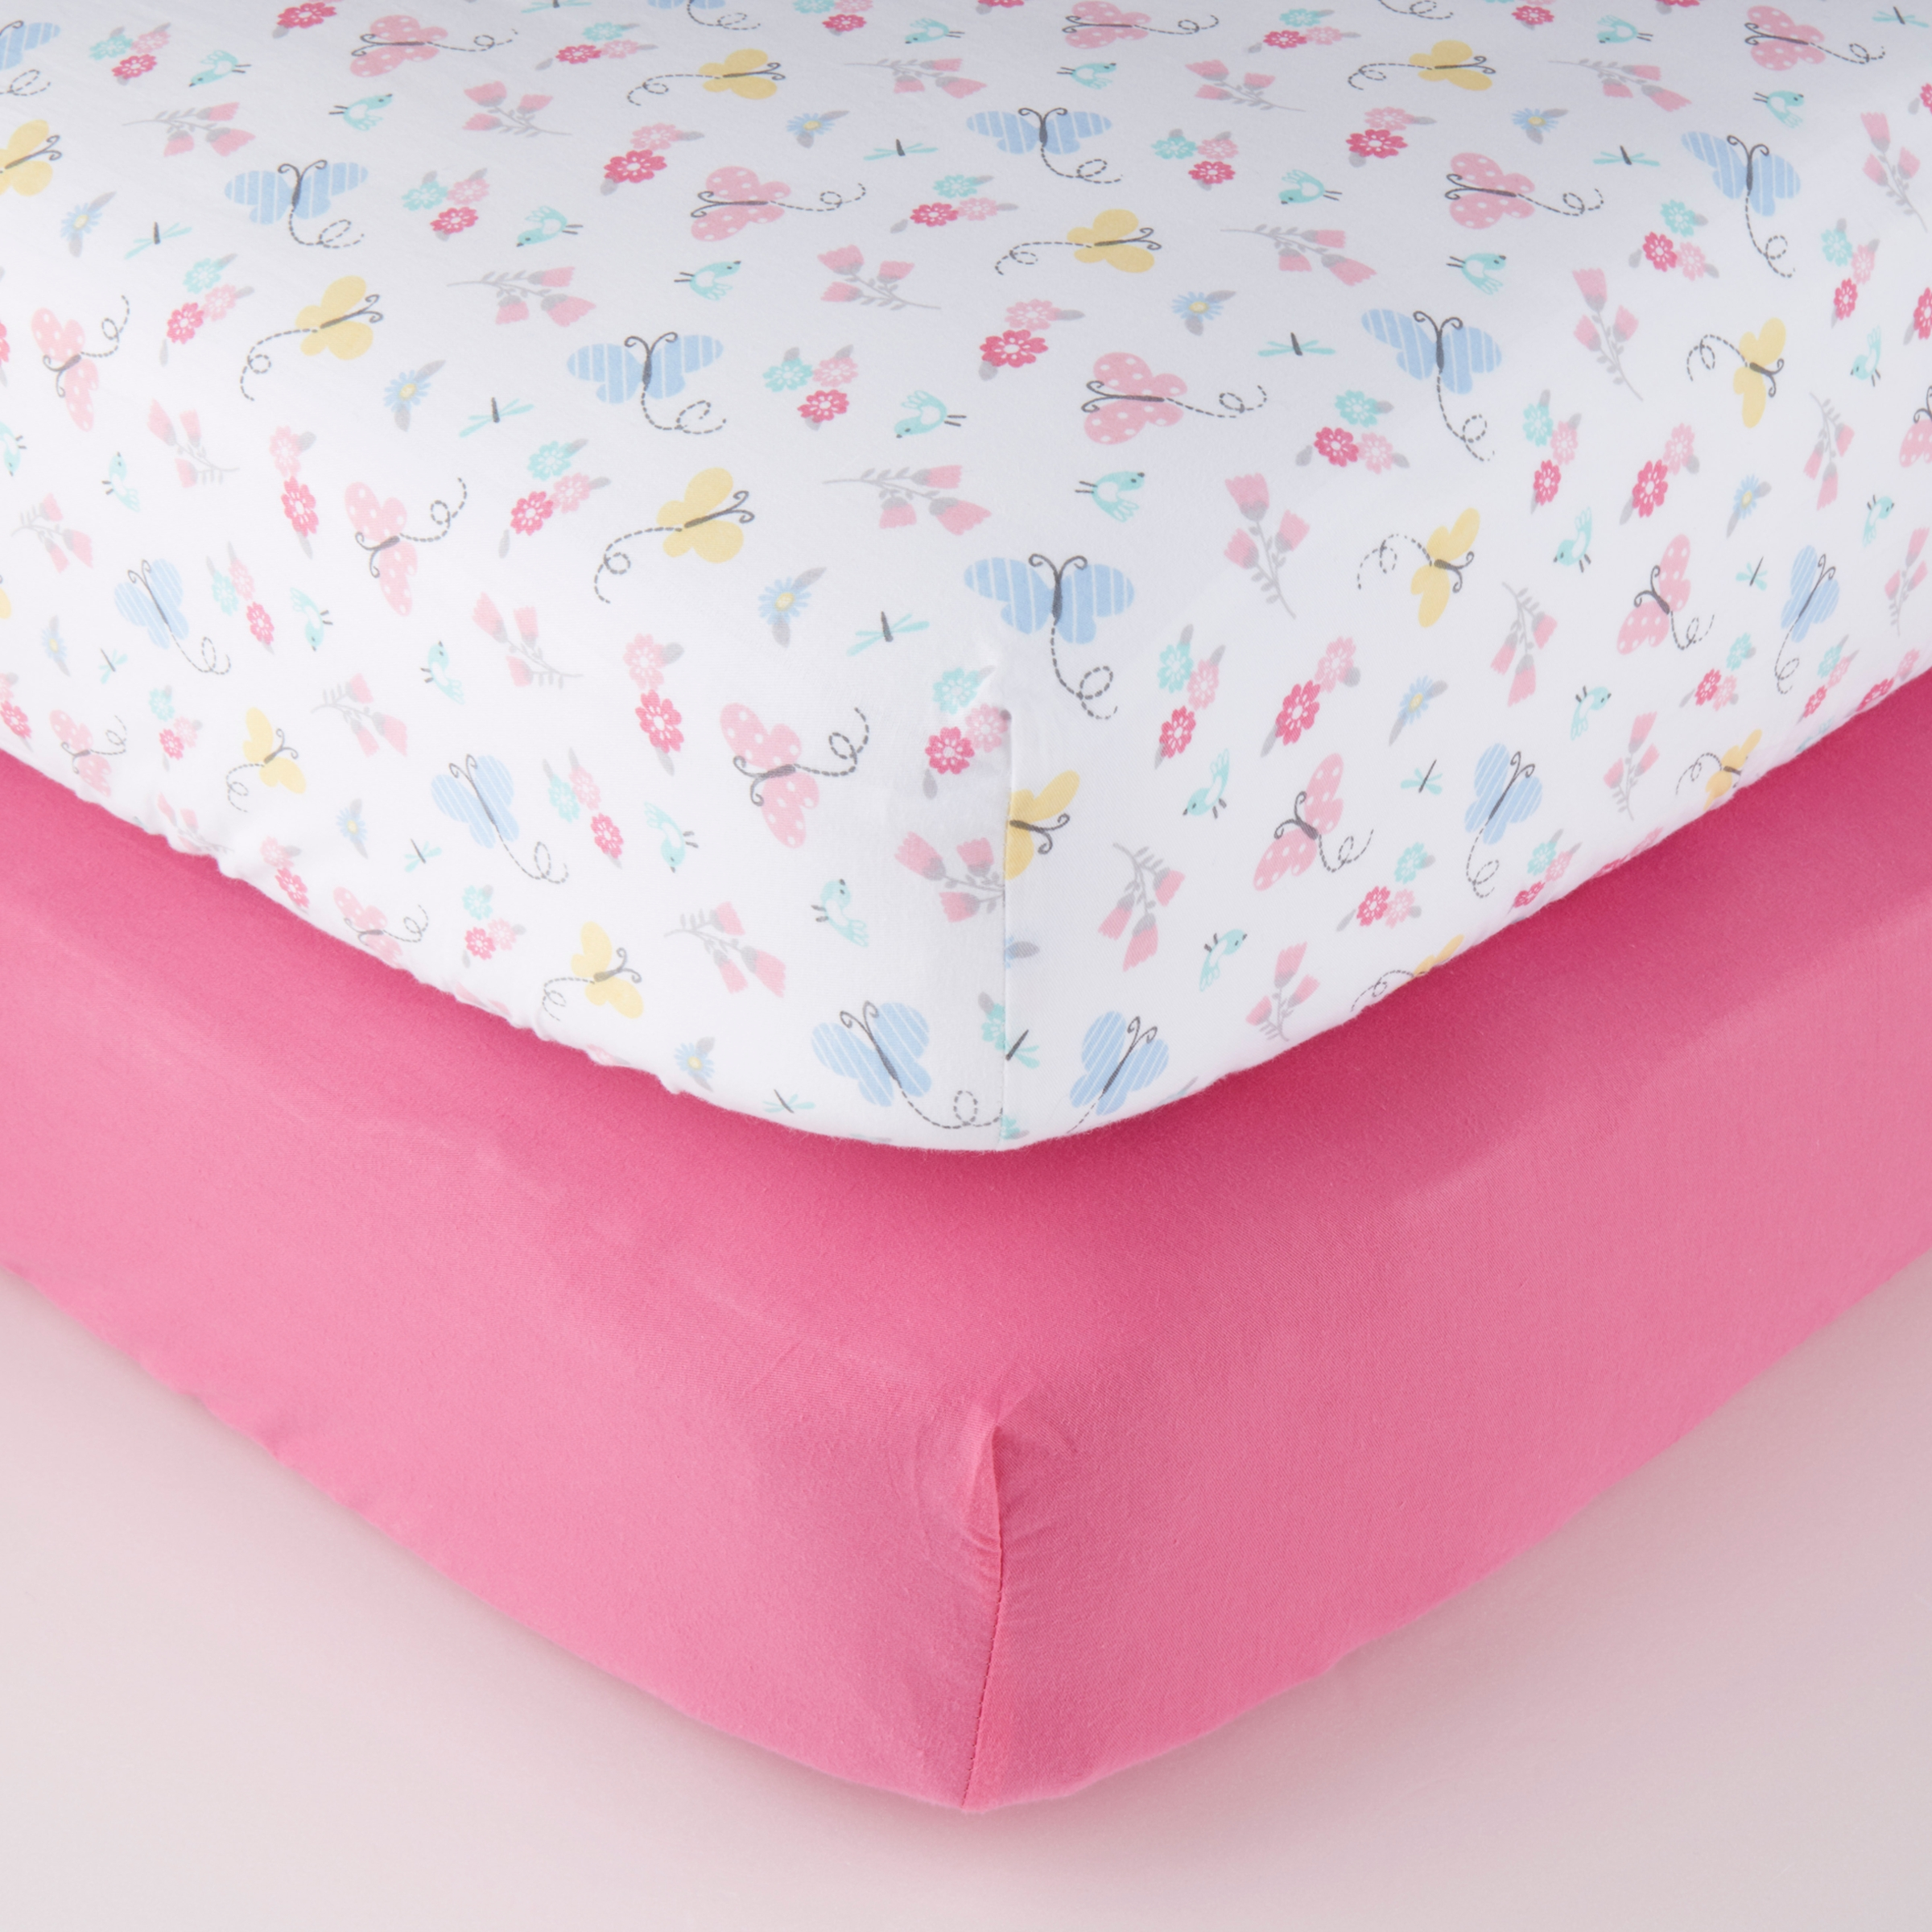 2x Cot Fitted Sheet Deluxe Baby 100/% Cotton 120x60cm